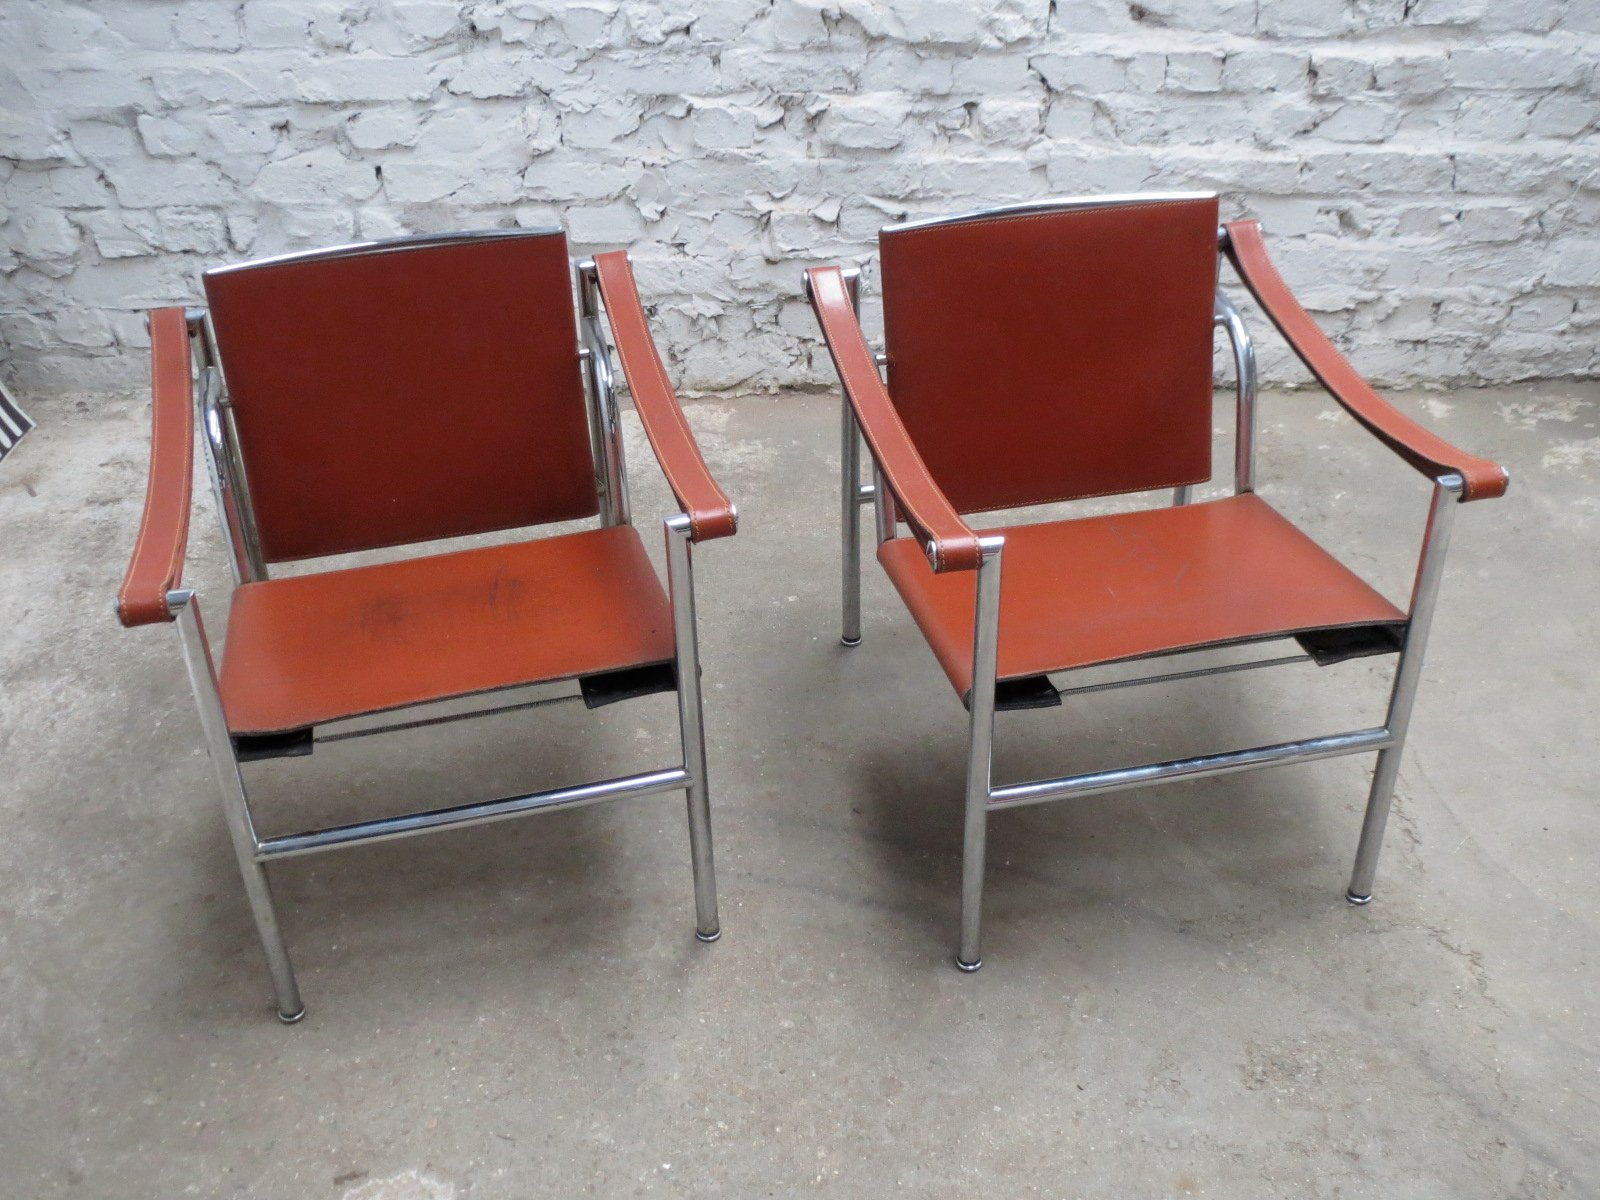 Italian Modernist Basculant Lc1 Chair By Le Corbusier